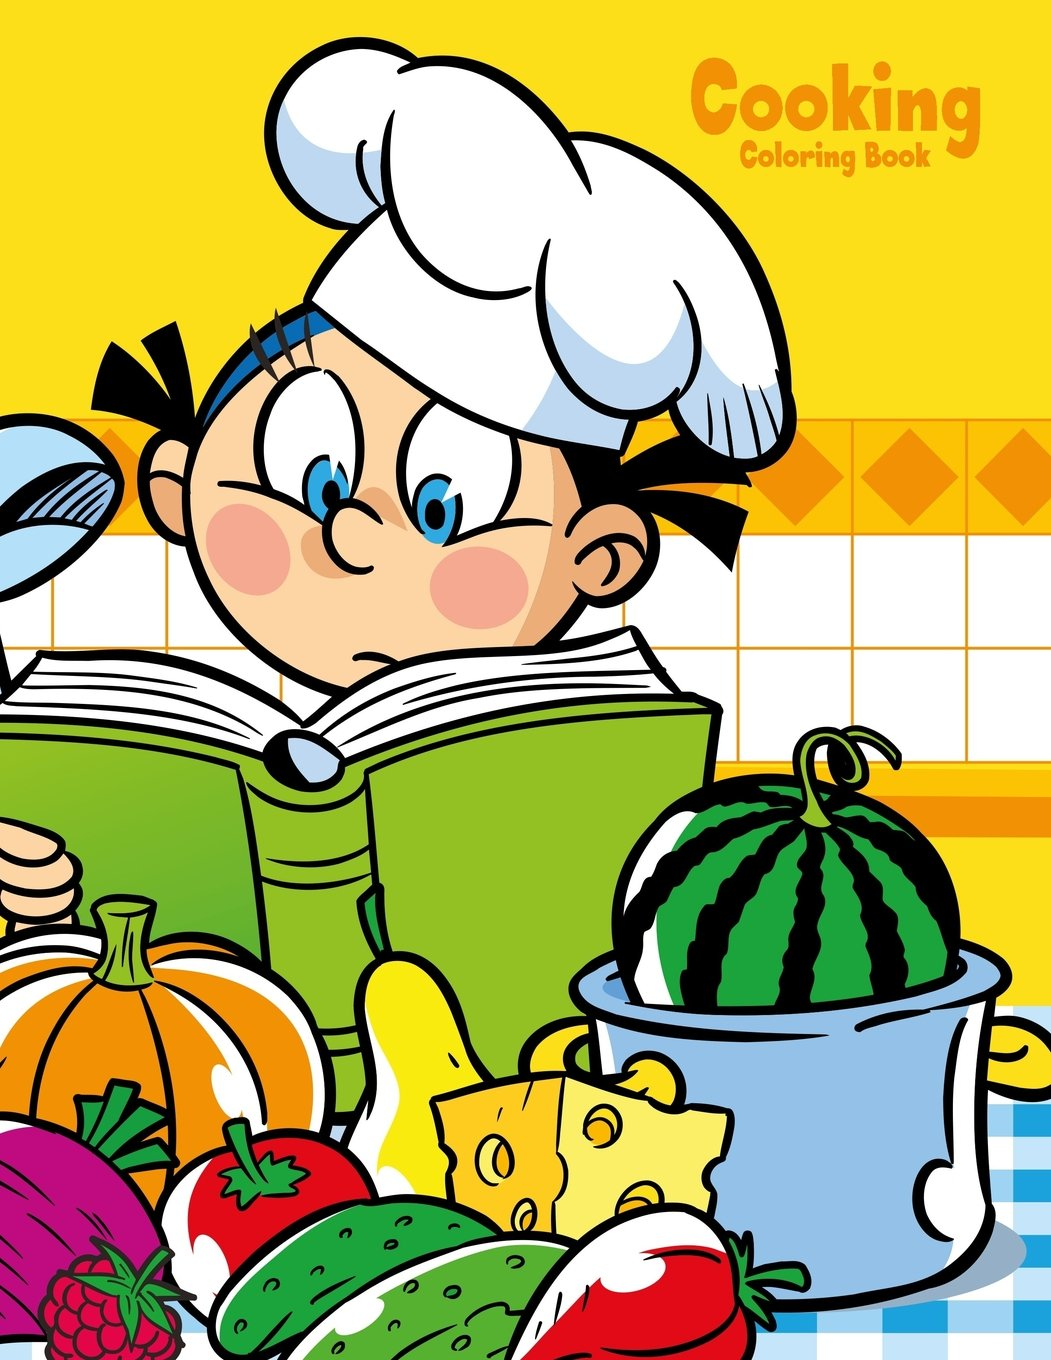 - Cooking Coloring Book 1 (Volume 1): Nick Snels: 9781986627566